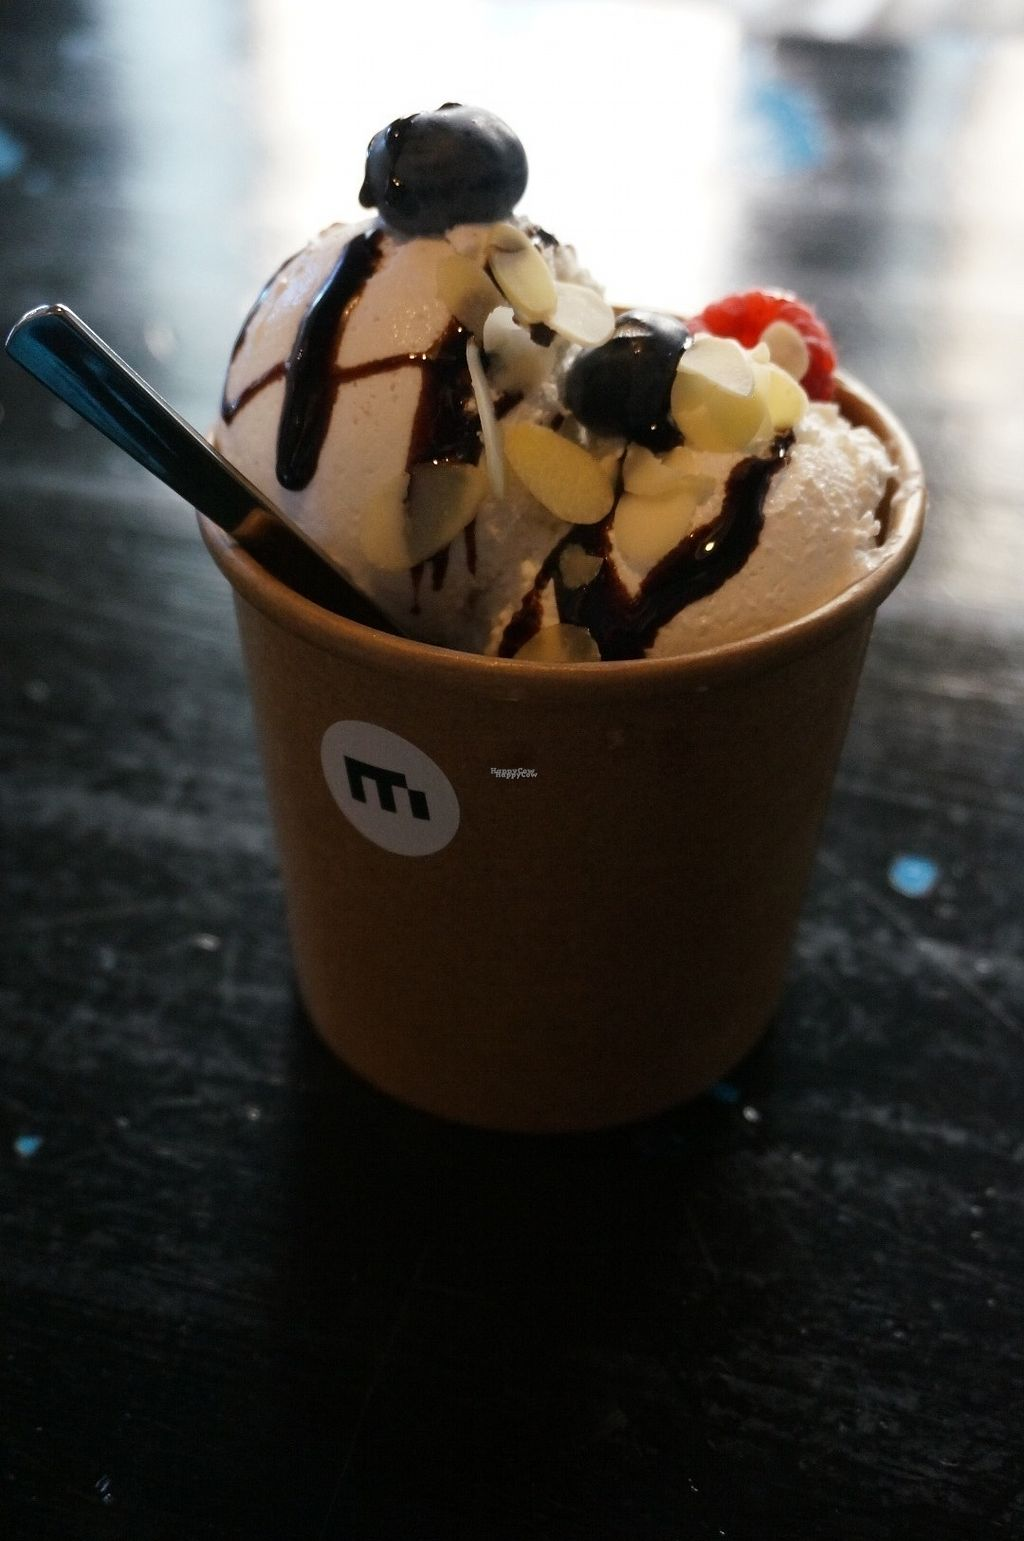 """Photo of MiiT  by <a href=""""/members/profile/Ricardo"""">Ricardo</a> <br/>Coconut ice-cream (vegan) <br/> August 26, 2016  - <a href='/contact/abuse/image/35136/171491'>Report</a>"""